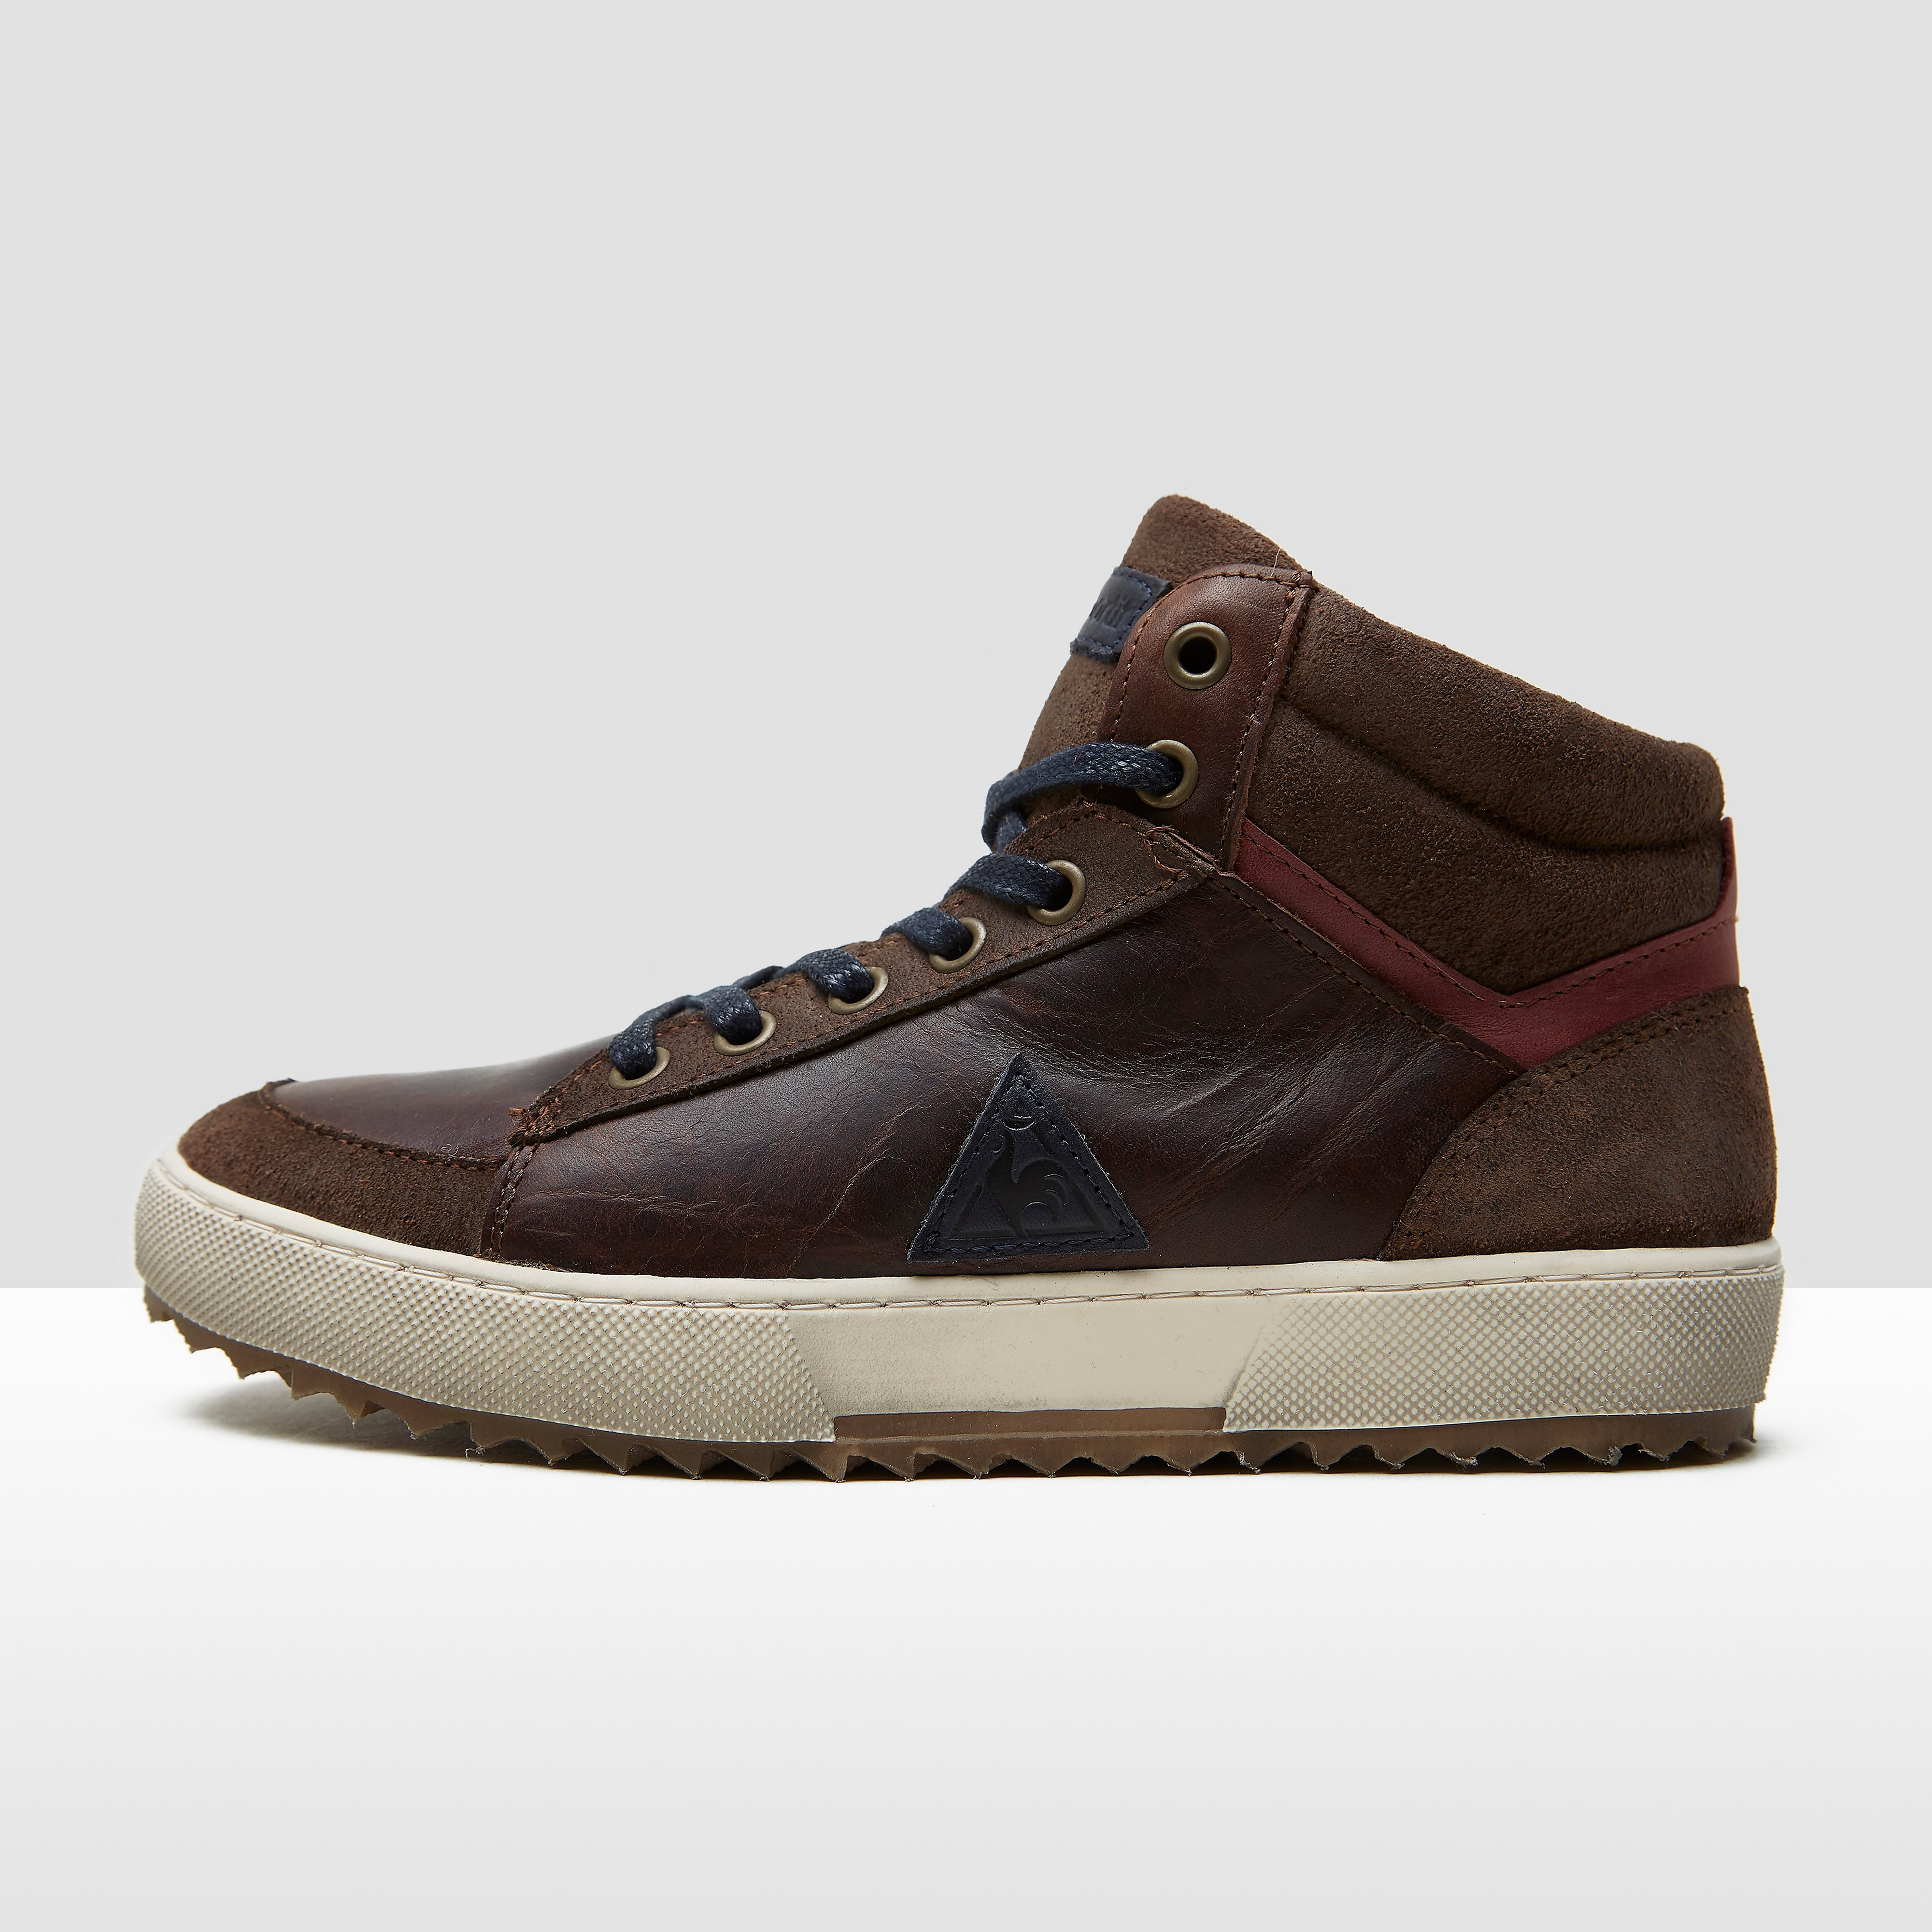 LE COQ SPORTIF DARCELL MID COFFEE SNEAKERS BRUIN KINDEREN